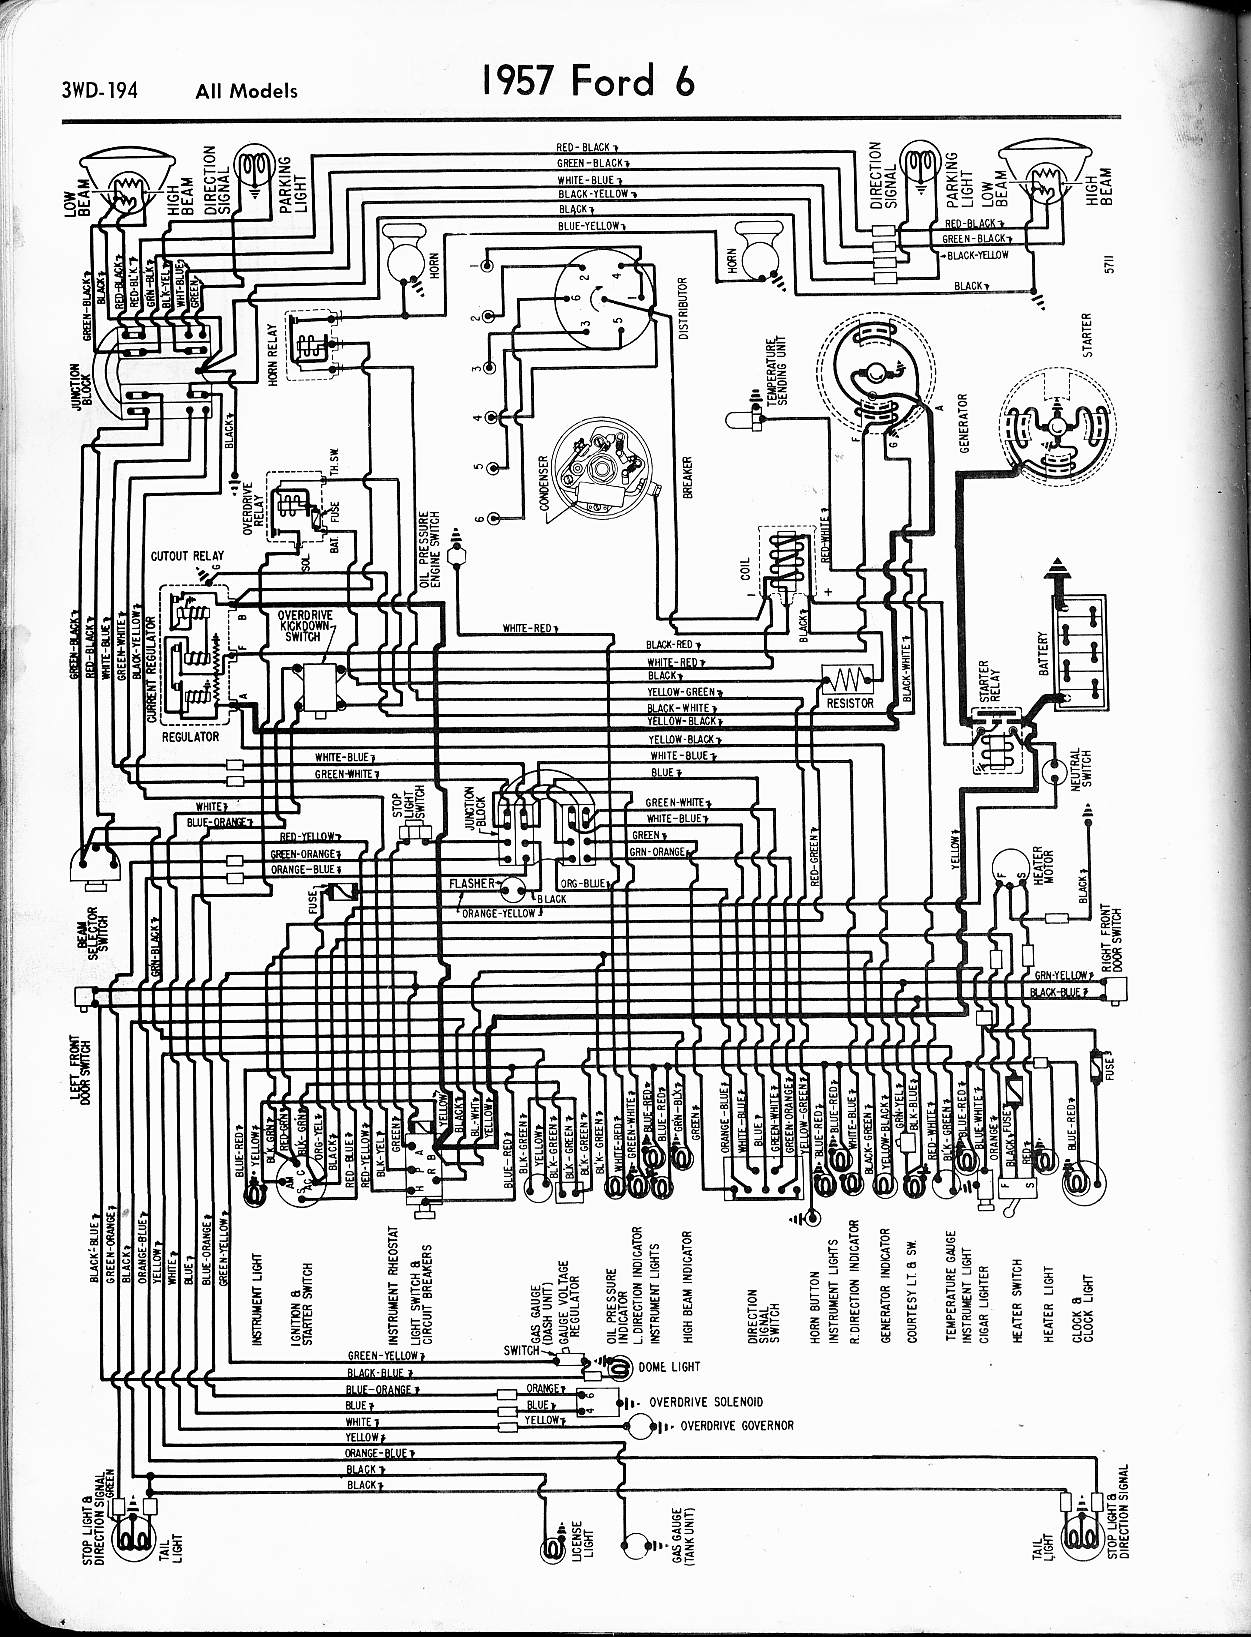 MWire5765 194 1955 ford wiring diagram 2014 dodge 2500 wiring diagram \u2022 free 1955 thunderbird wiring diagram at gsmx.co